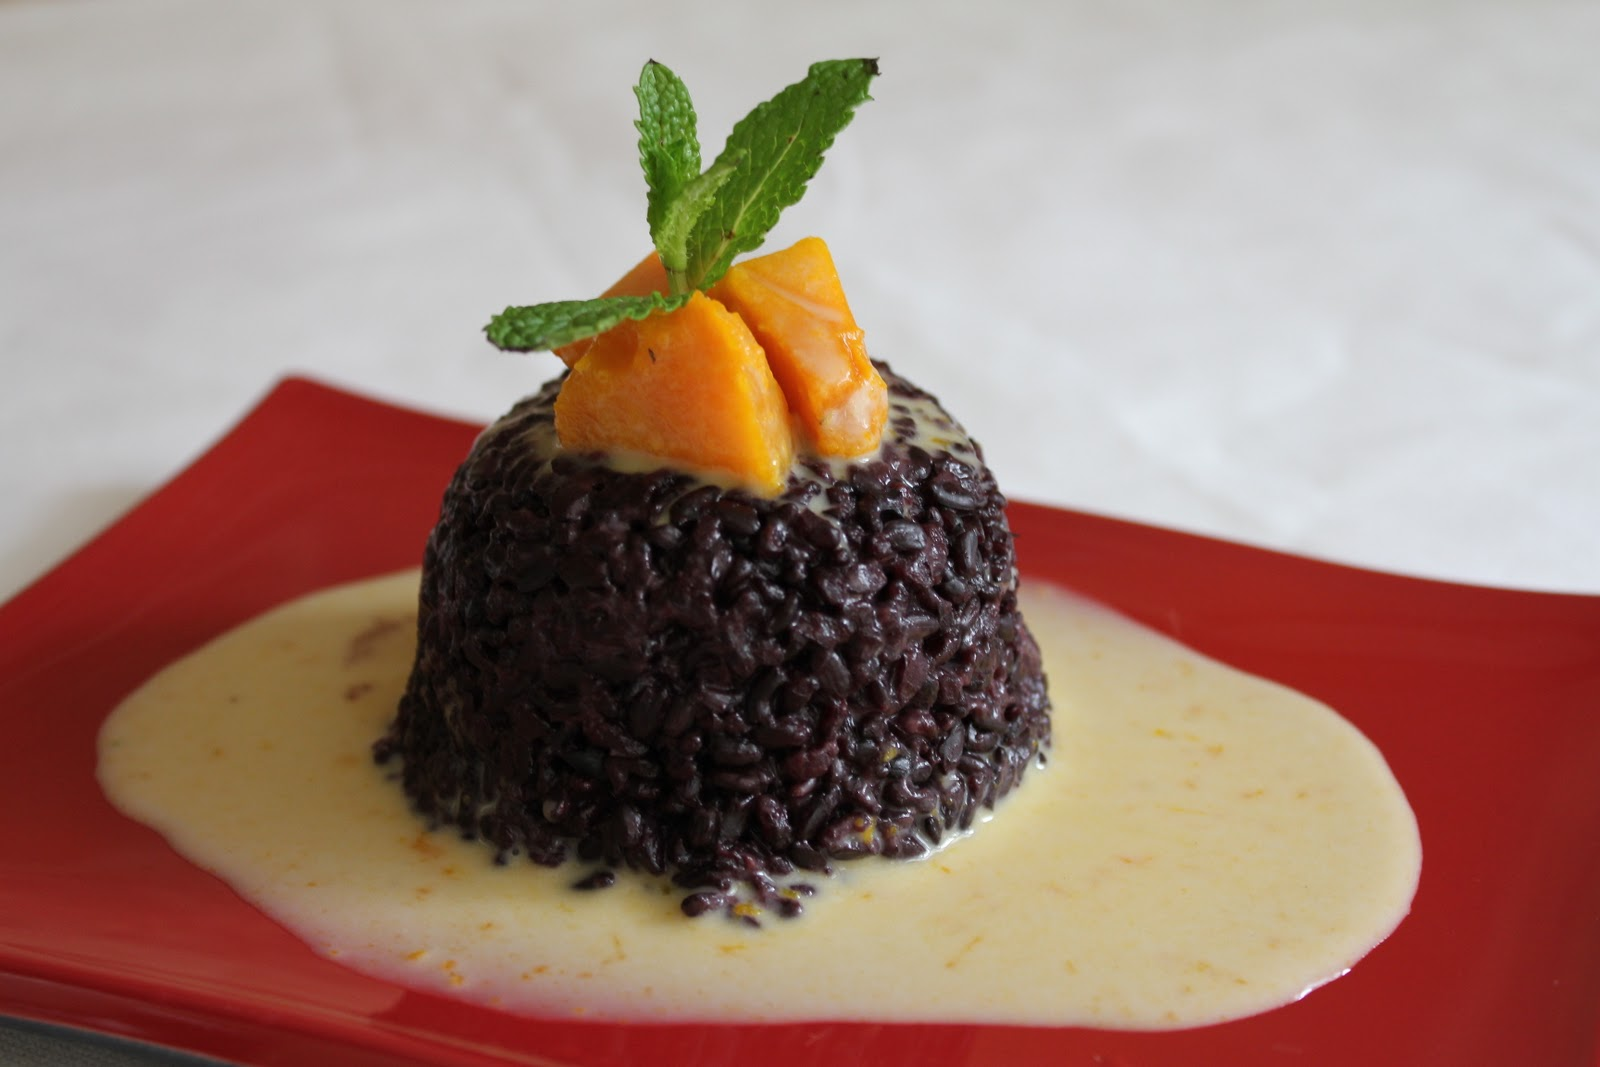 Thai Black Sweet Rice with Kabocha Cream